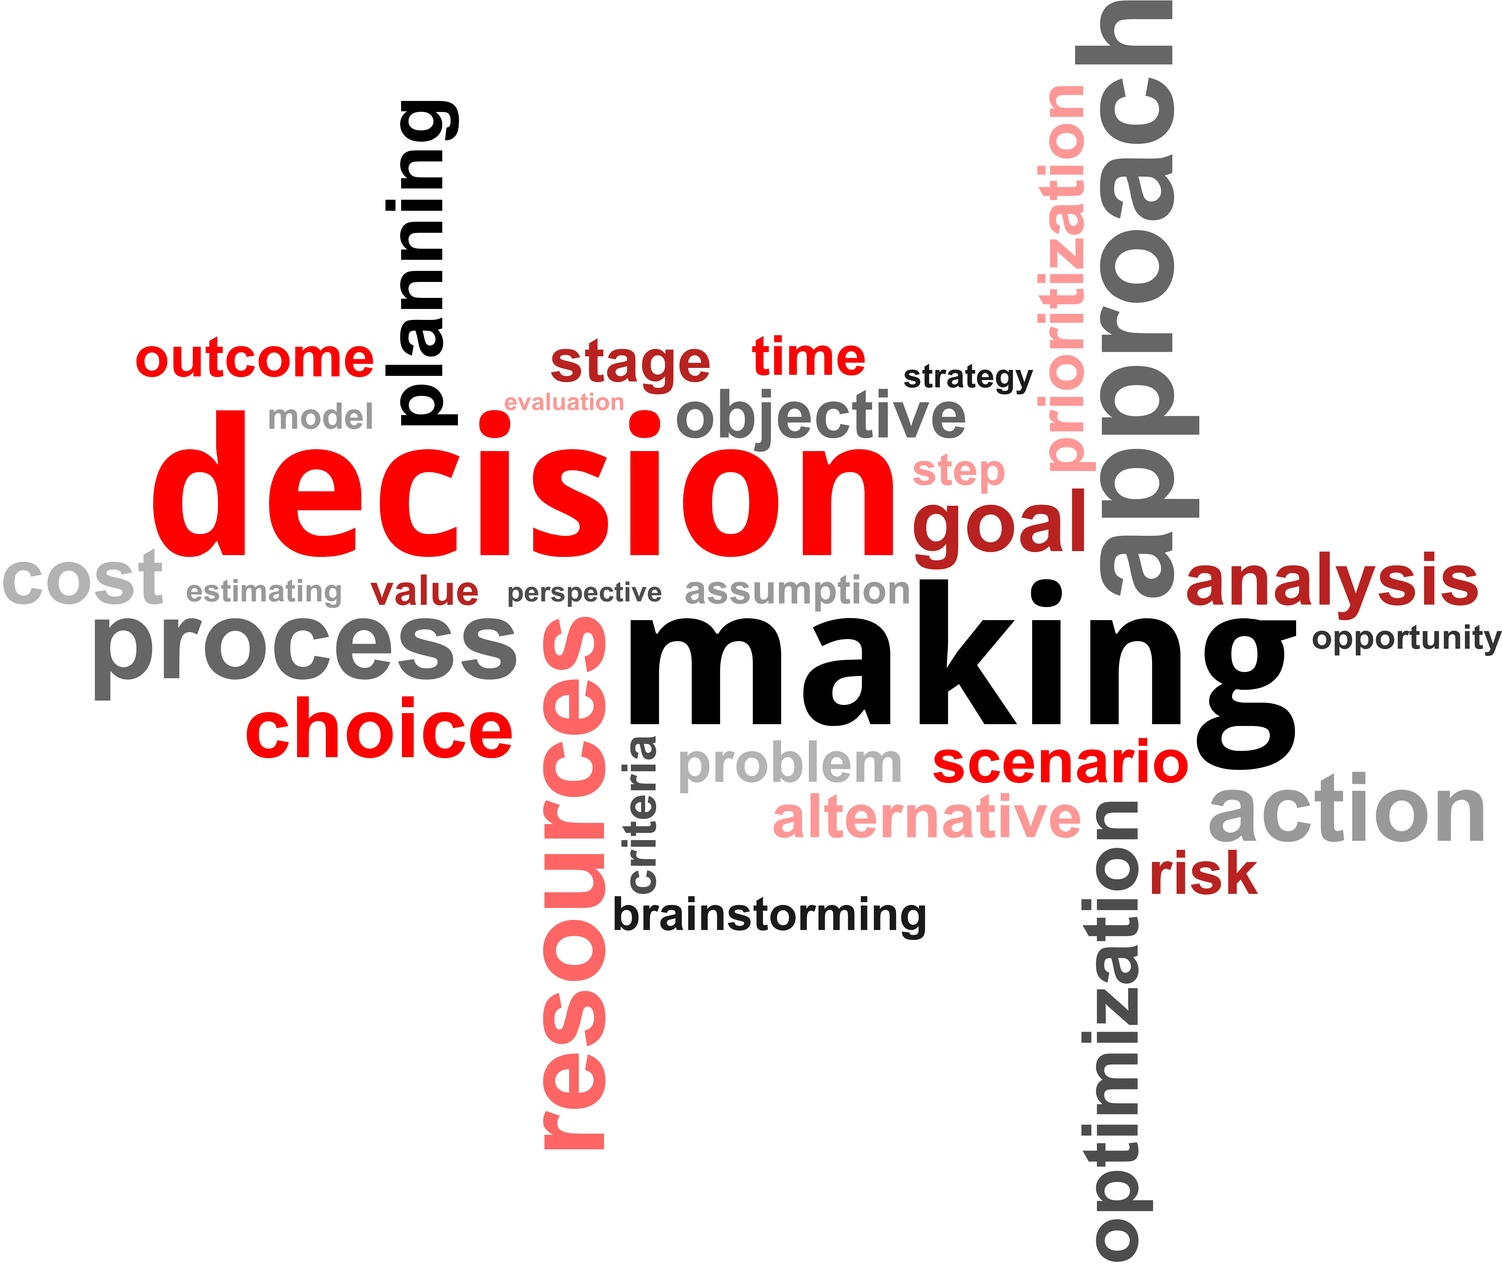 management making the right decision Management style team 5 steps to making the right decisions for while learning how to trust your intuition and decision-making skills isn't always.